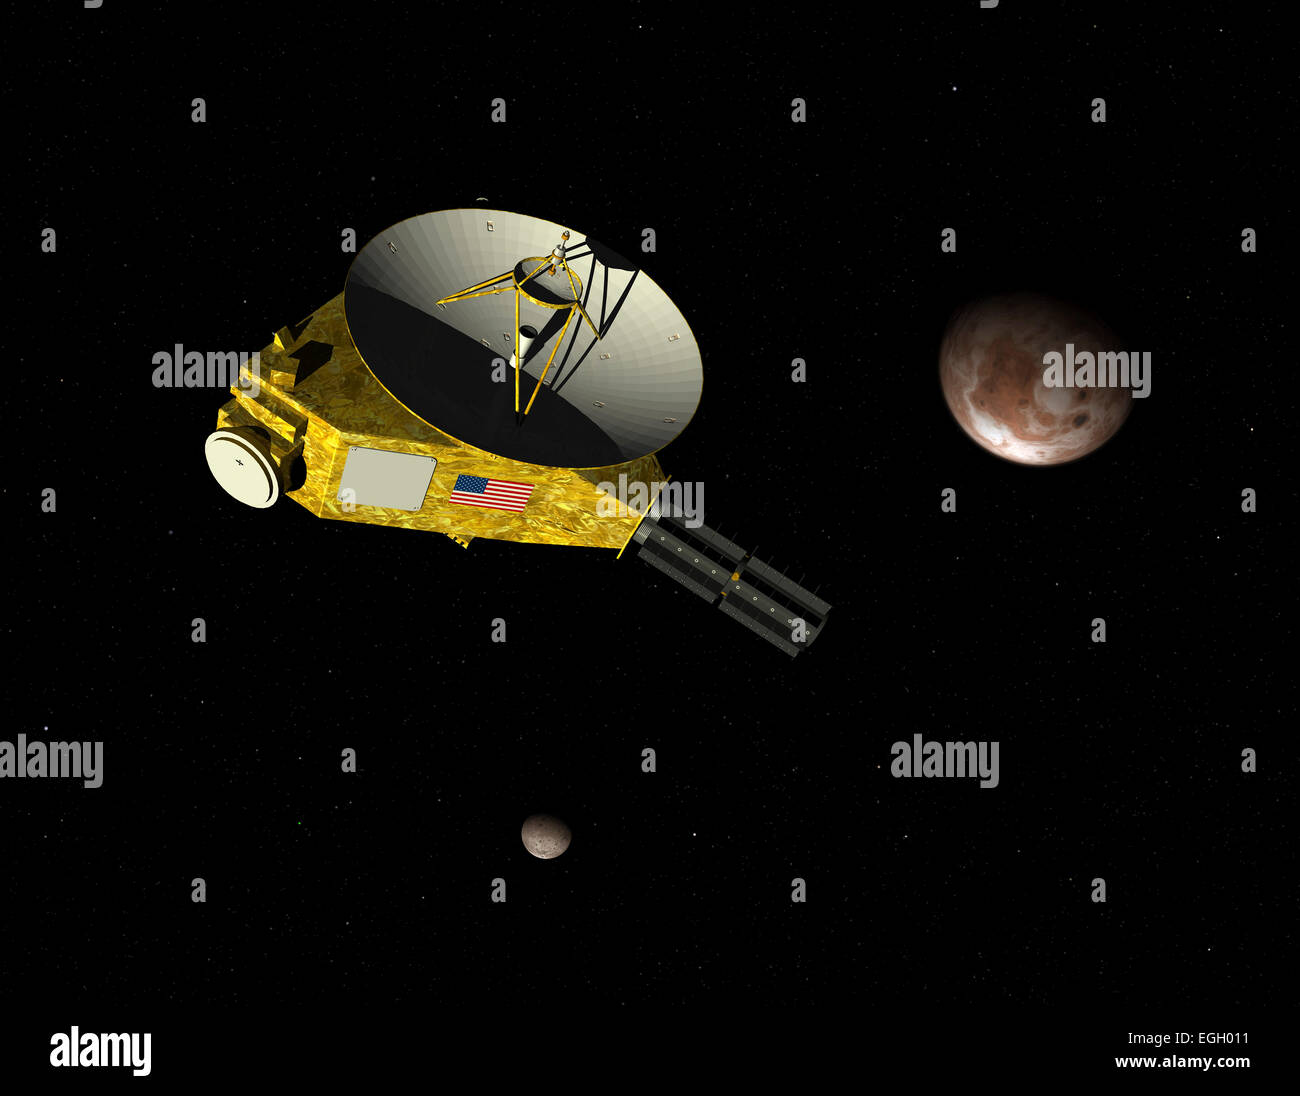 NASA's New Horizons unmanned spacecraft approaches dwarf planet Pluto and its moon Charon. New Horizons has been - Stock Image